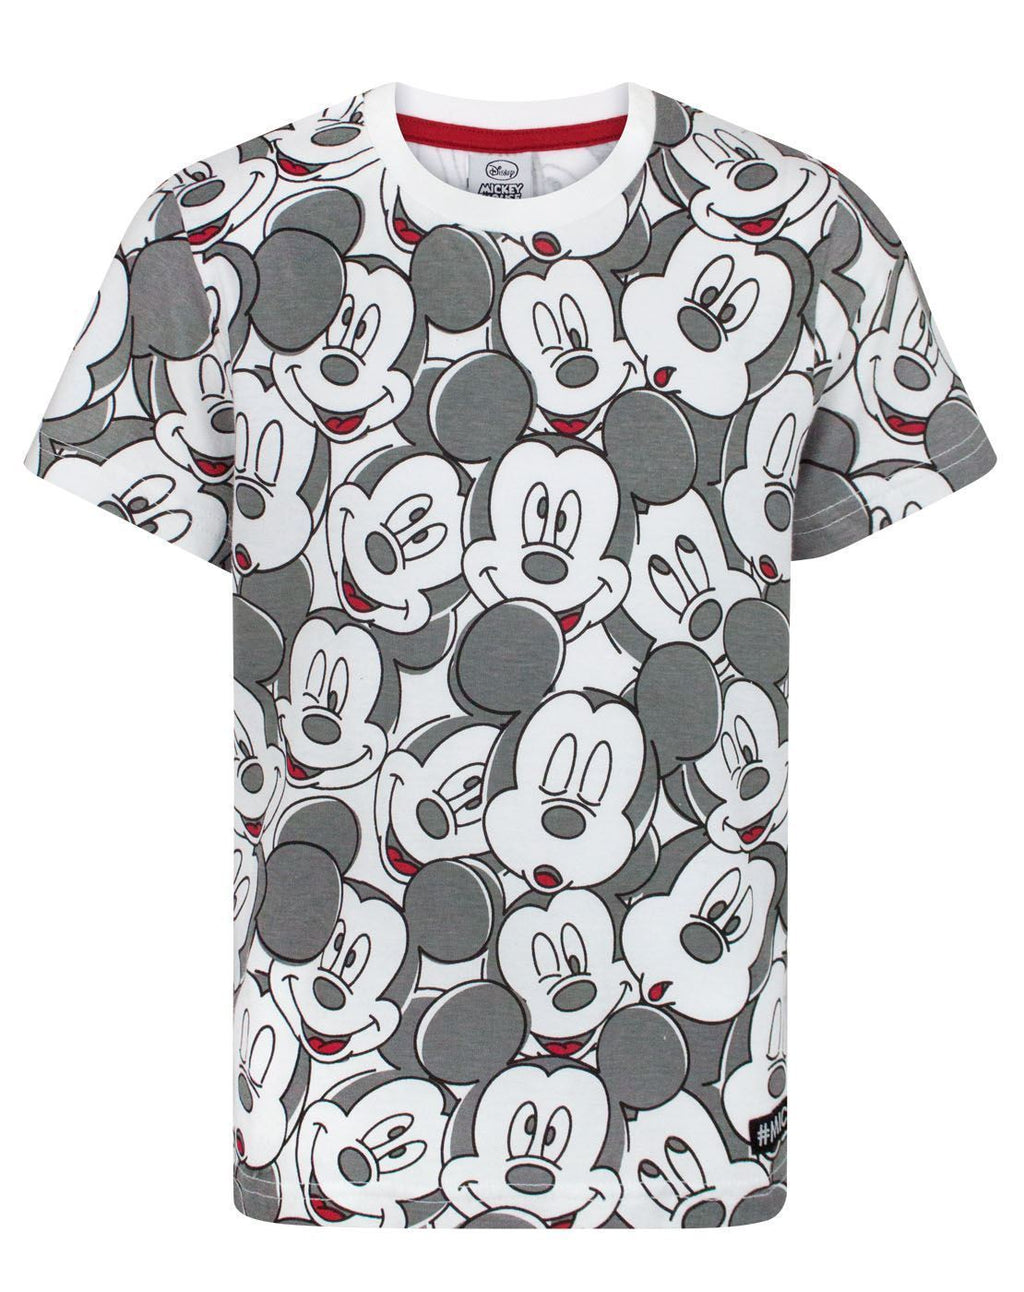 Disney Mickey Mouse Face All Over Print Boy's T-Shirt